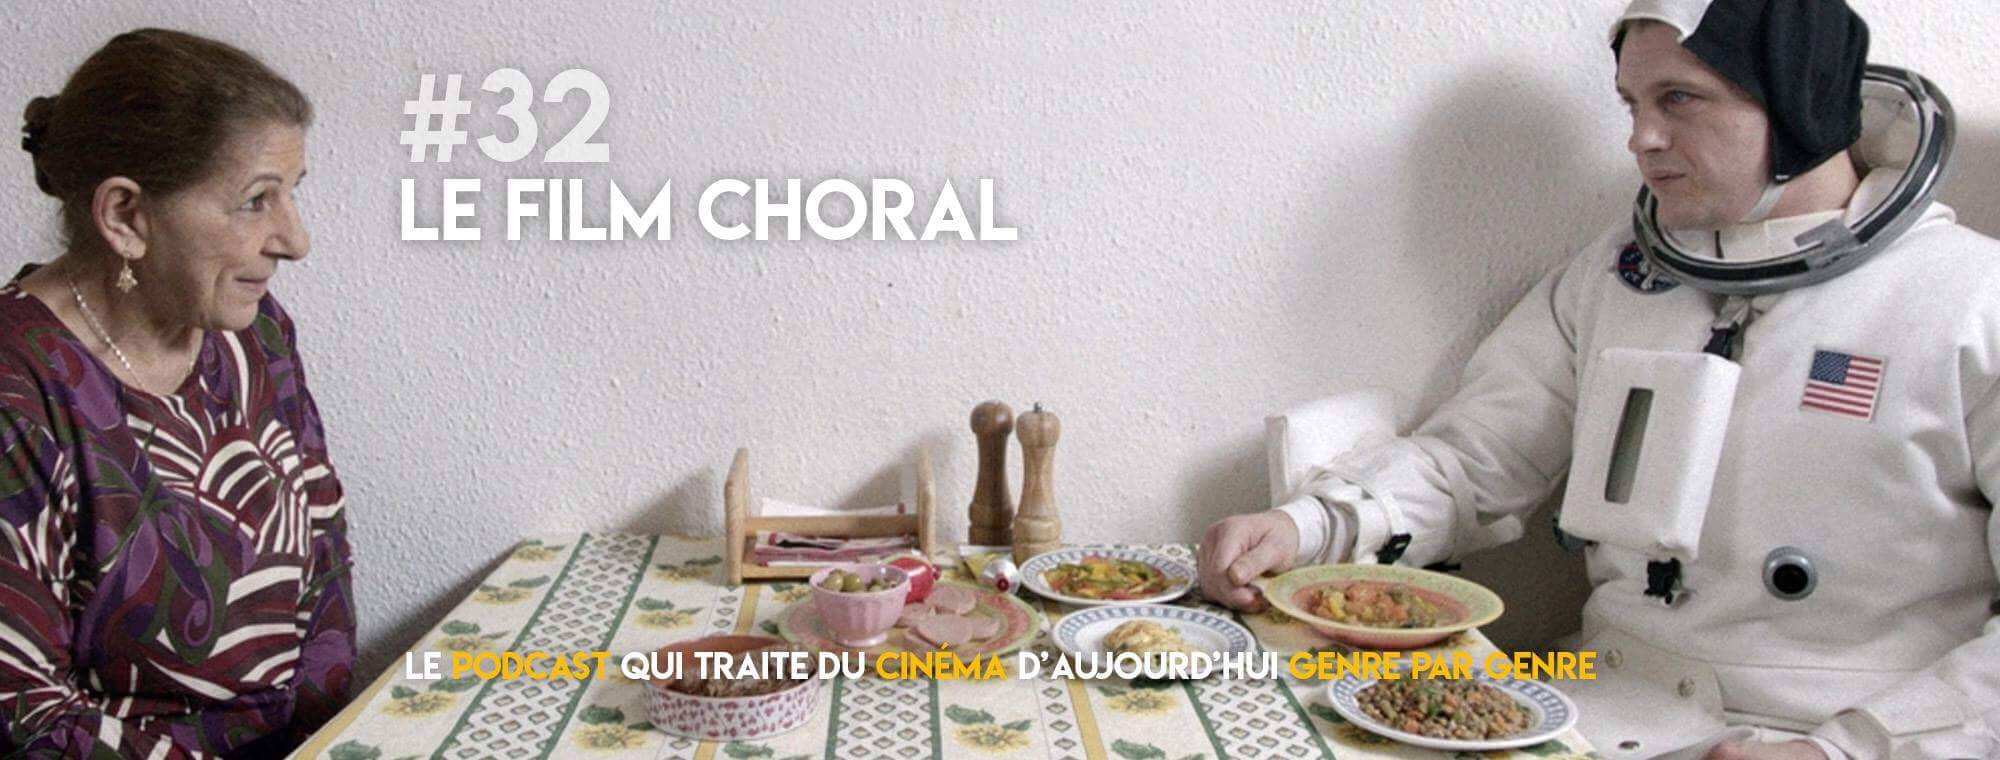 Parlons Péloches - #32 Le film choral